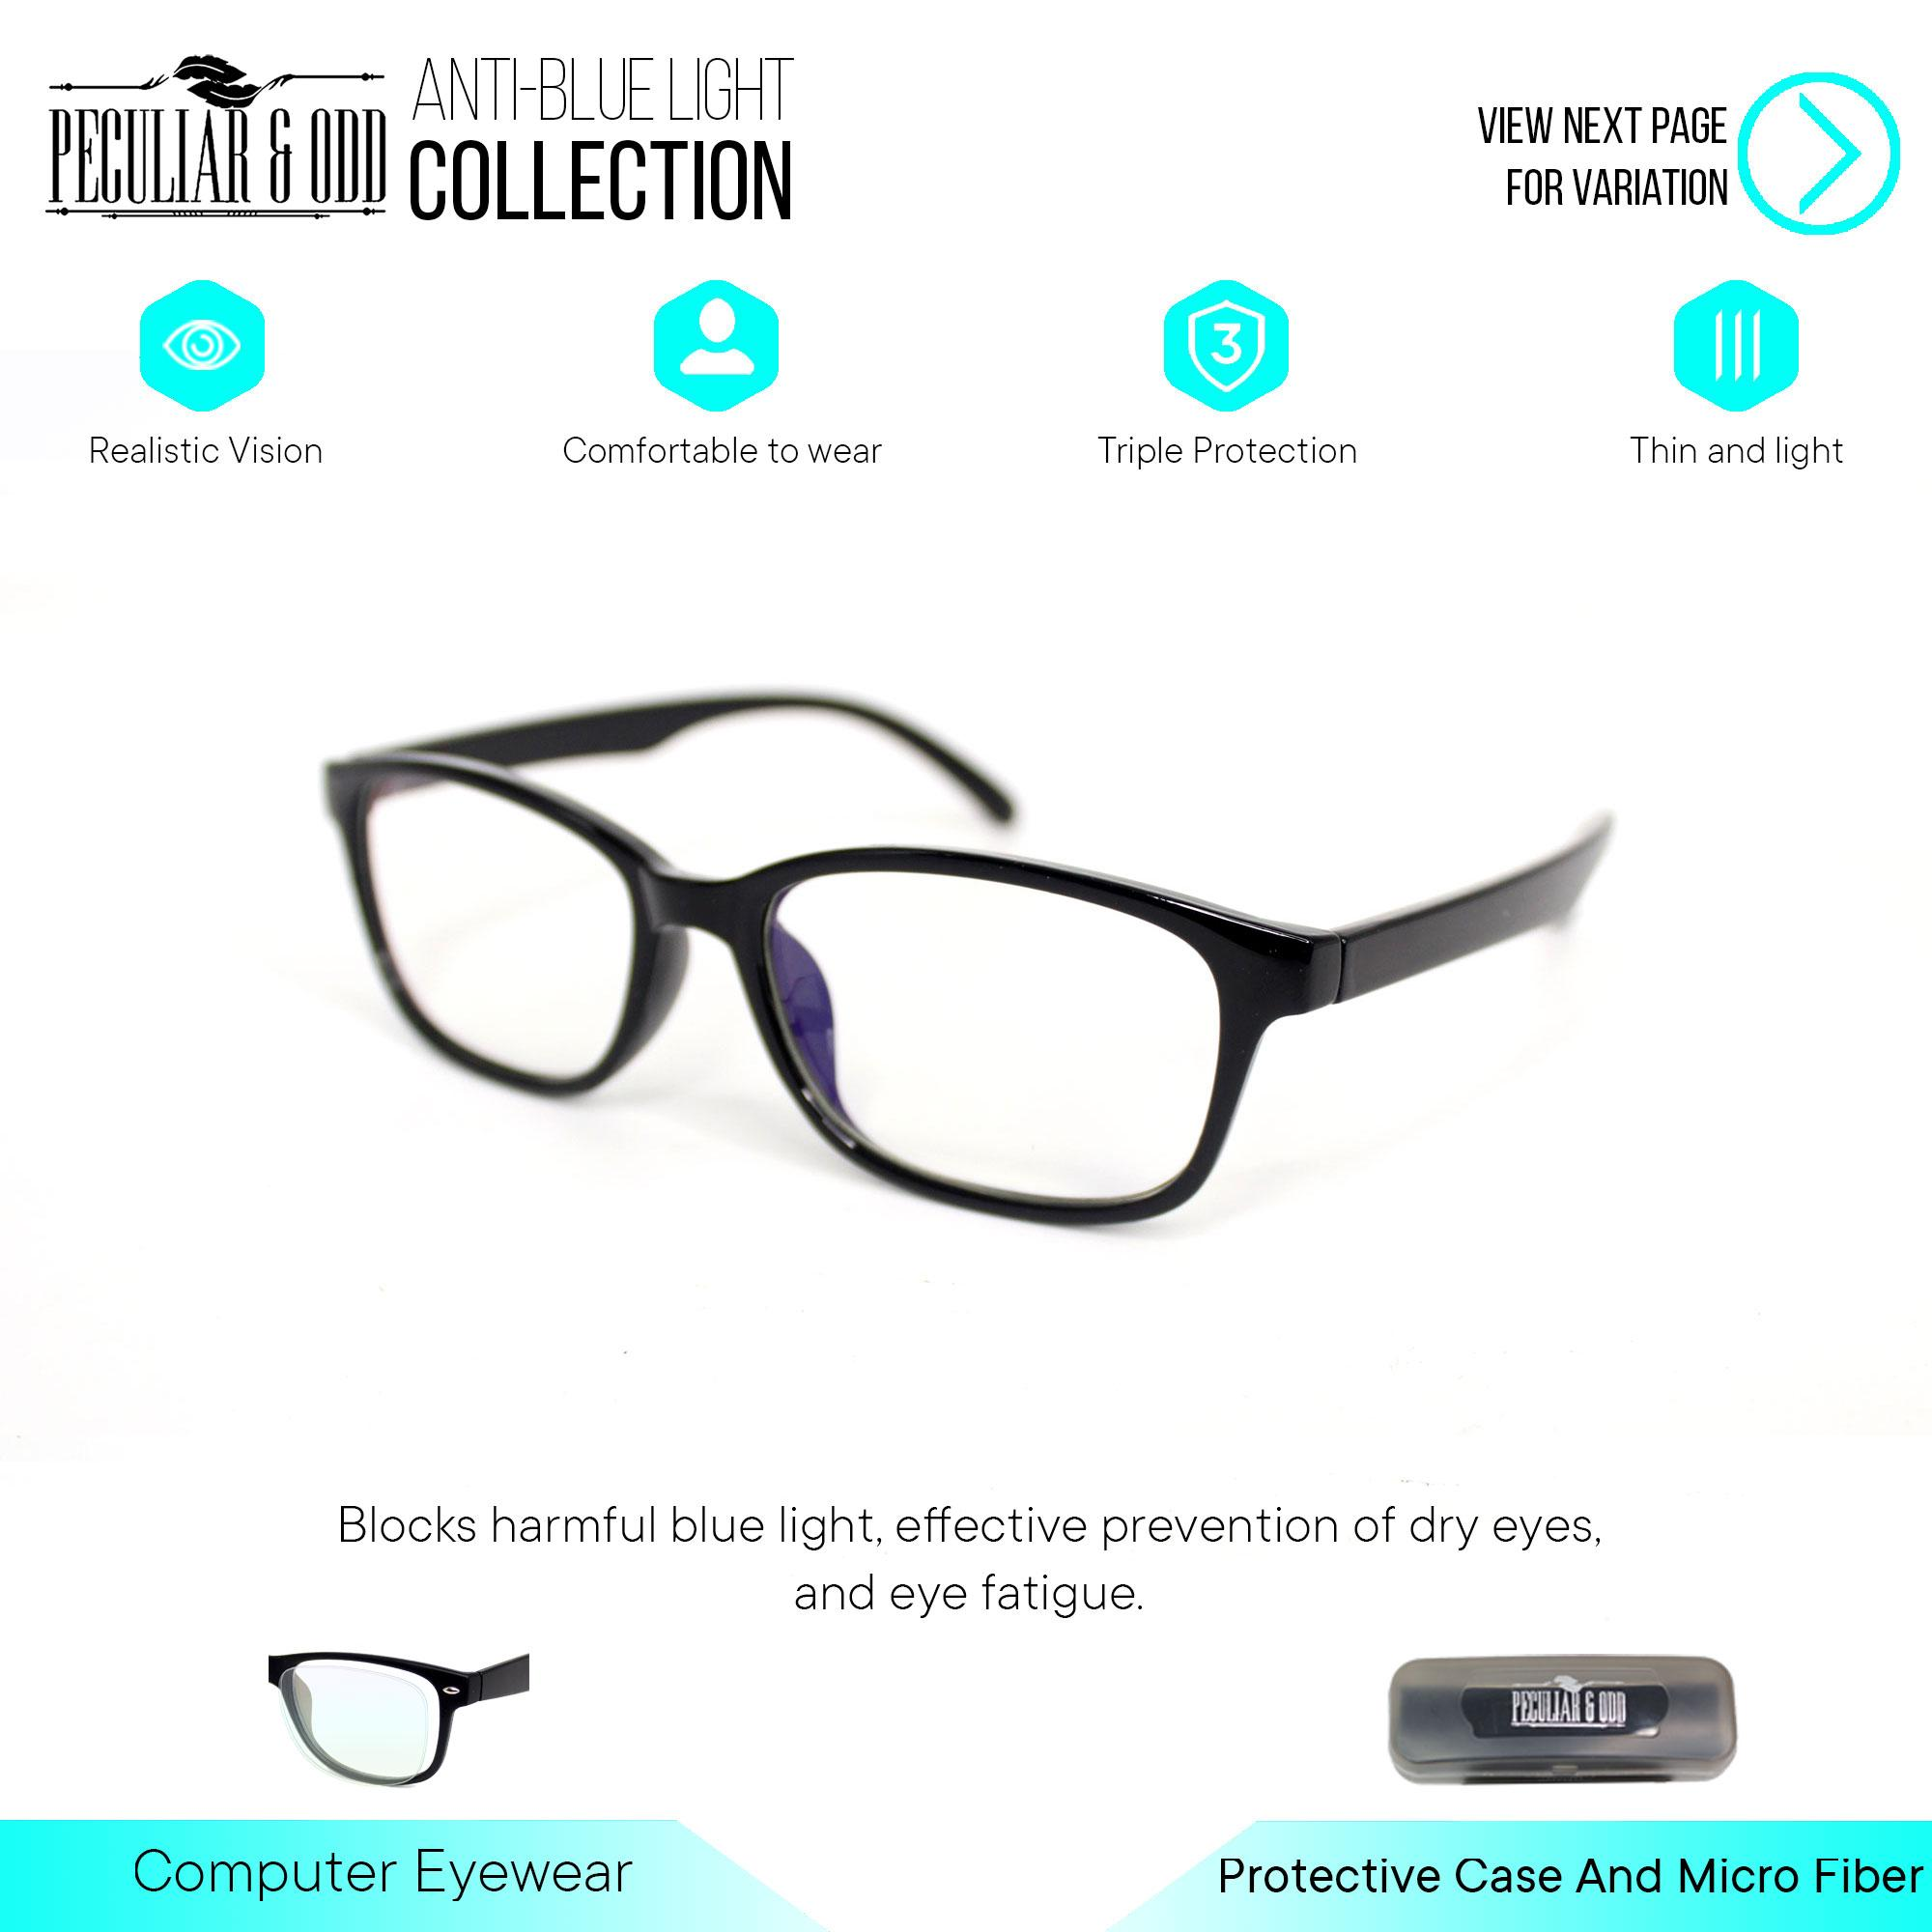 c7972a0a51c6d Peculiar Square 3028 CoalBlackClear Anti Radiation Computer Eyeglass  Optical Replaceable Eyewear Unisex new